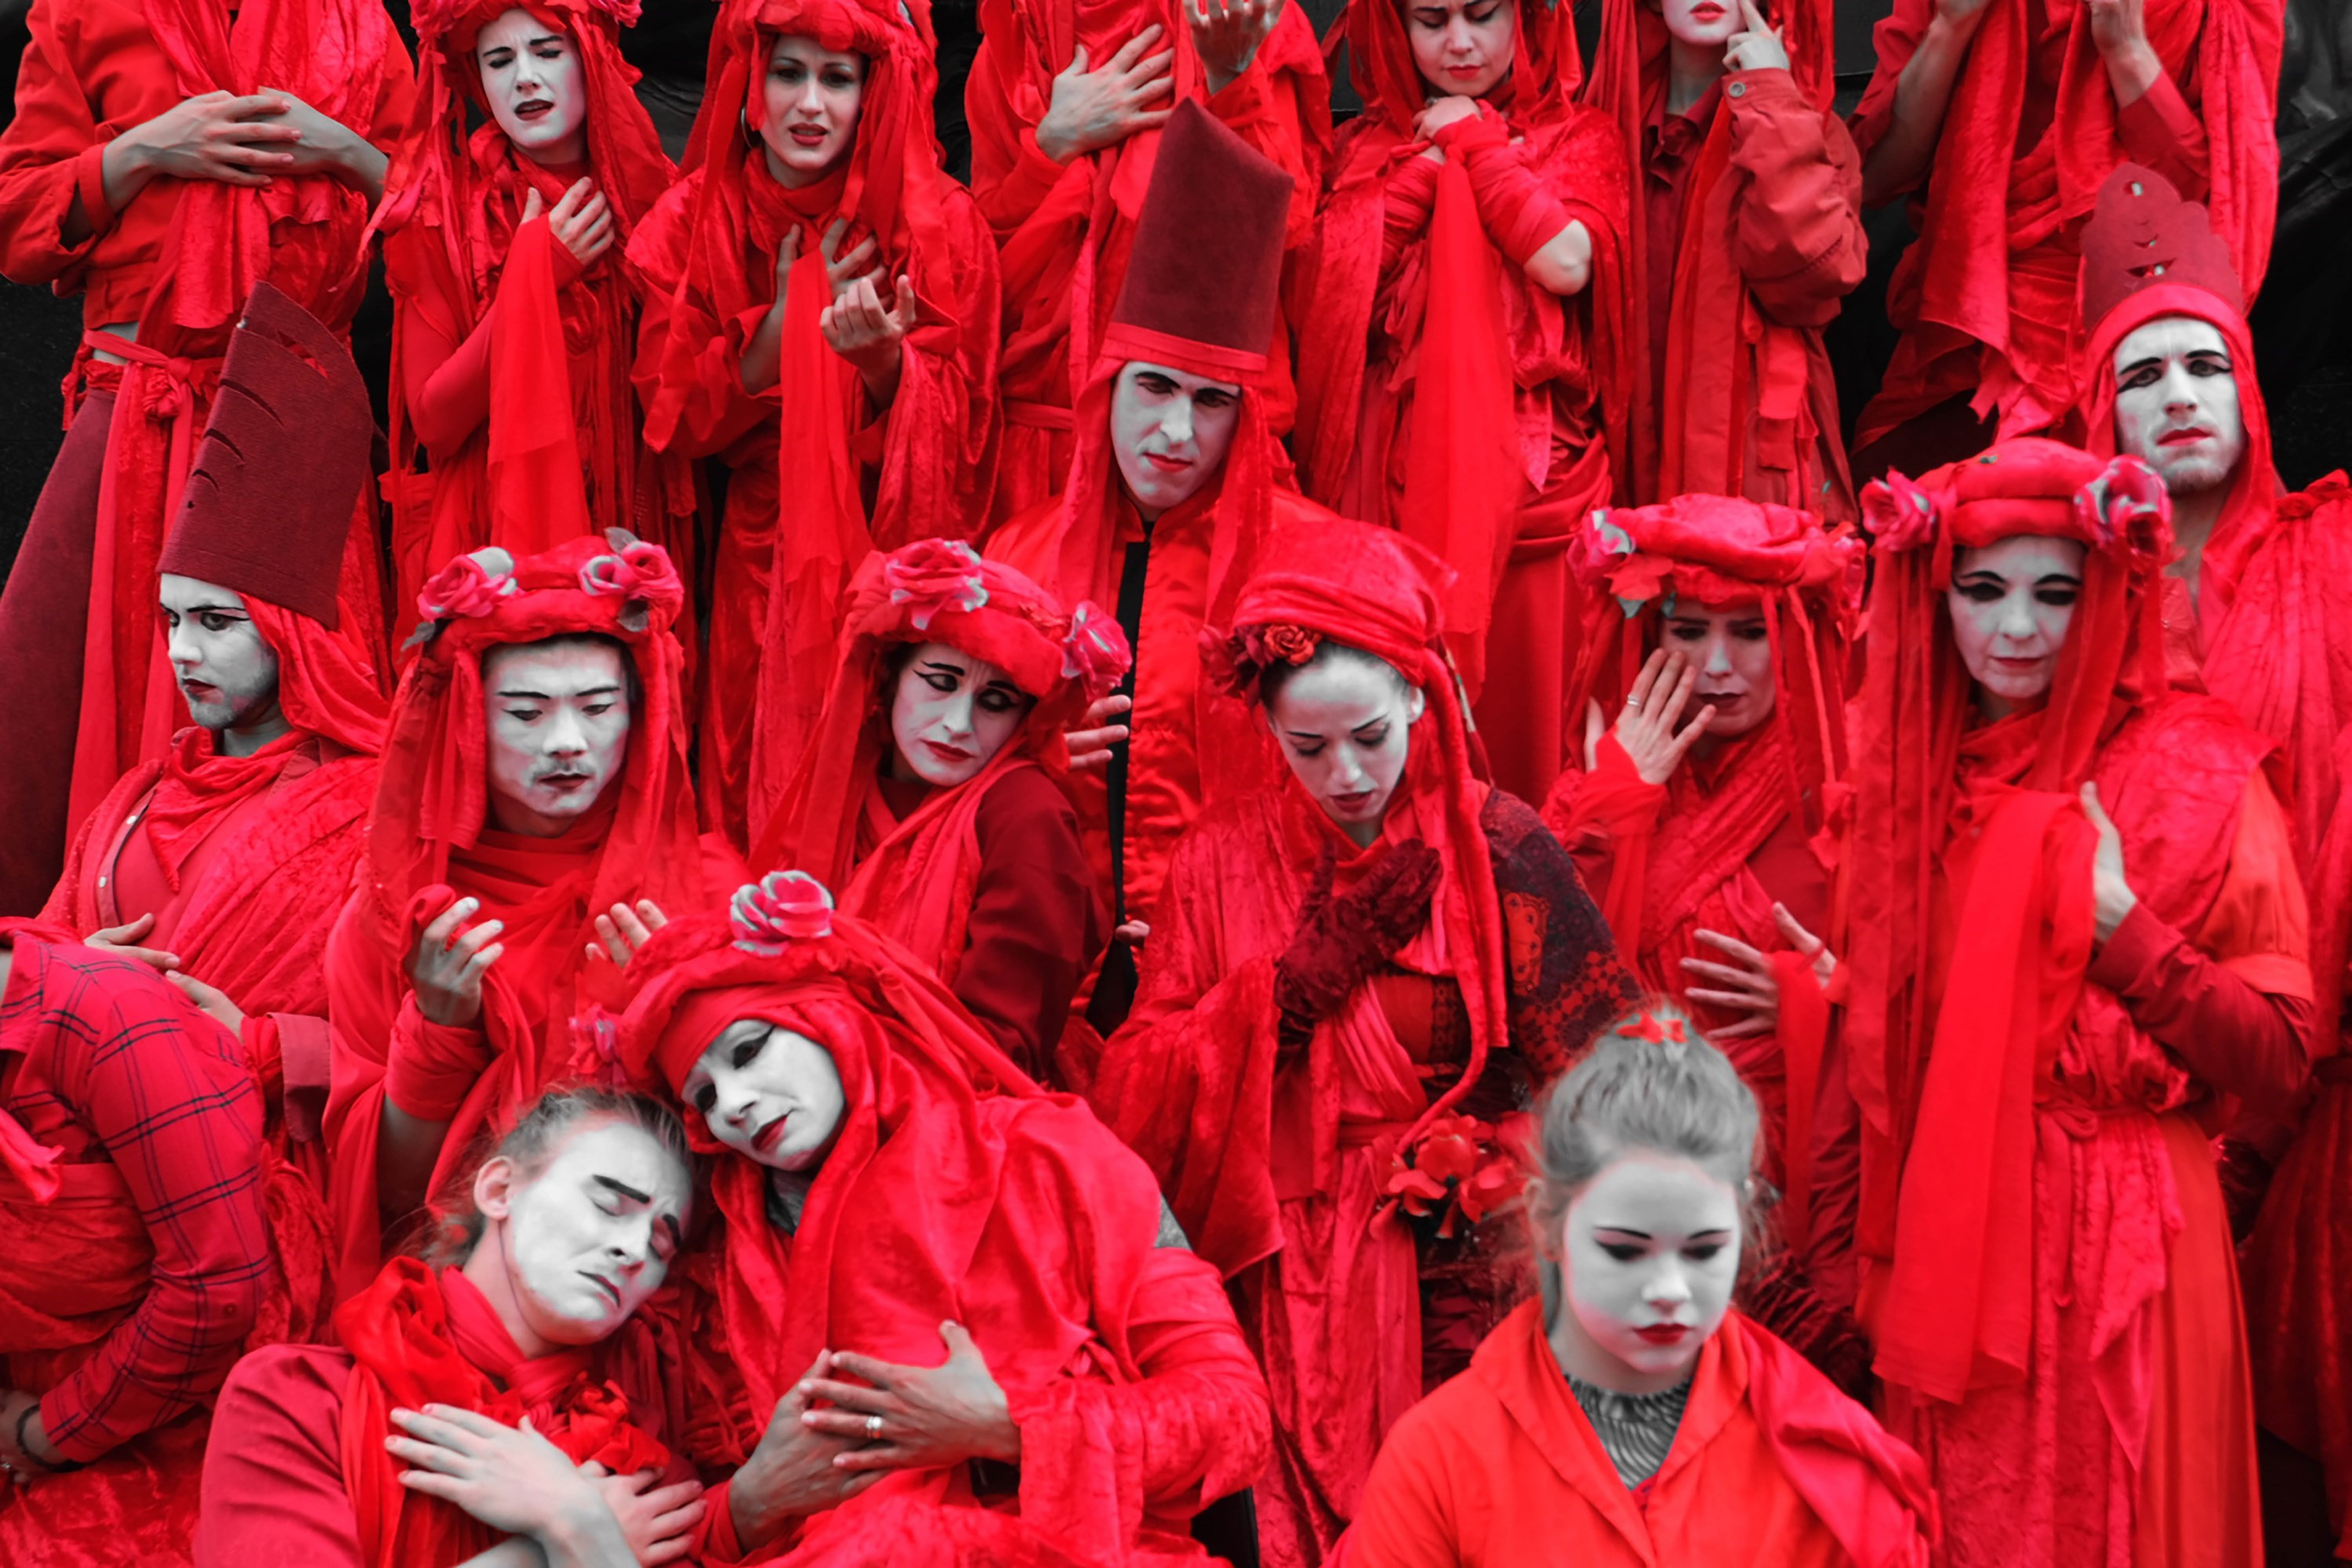 The meaning behind Extinction Rebellion's red-robed protesters | Dazed